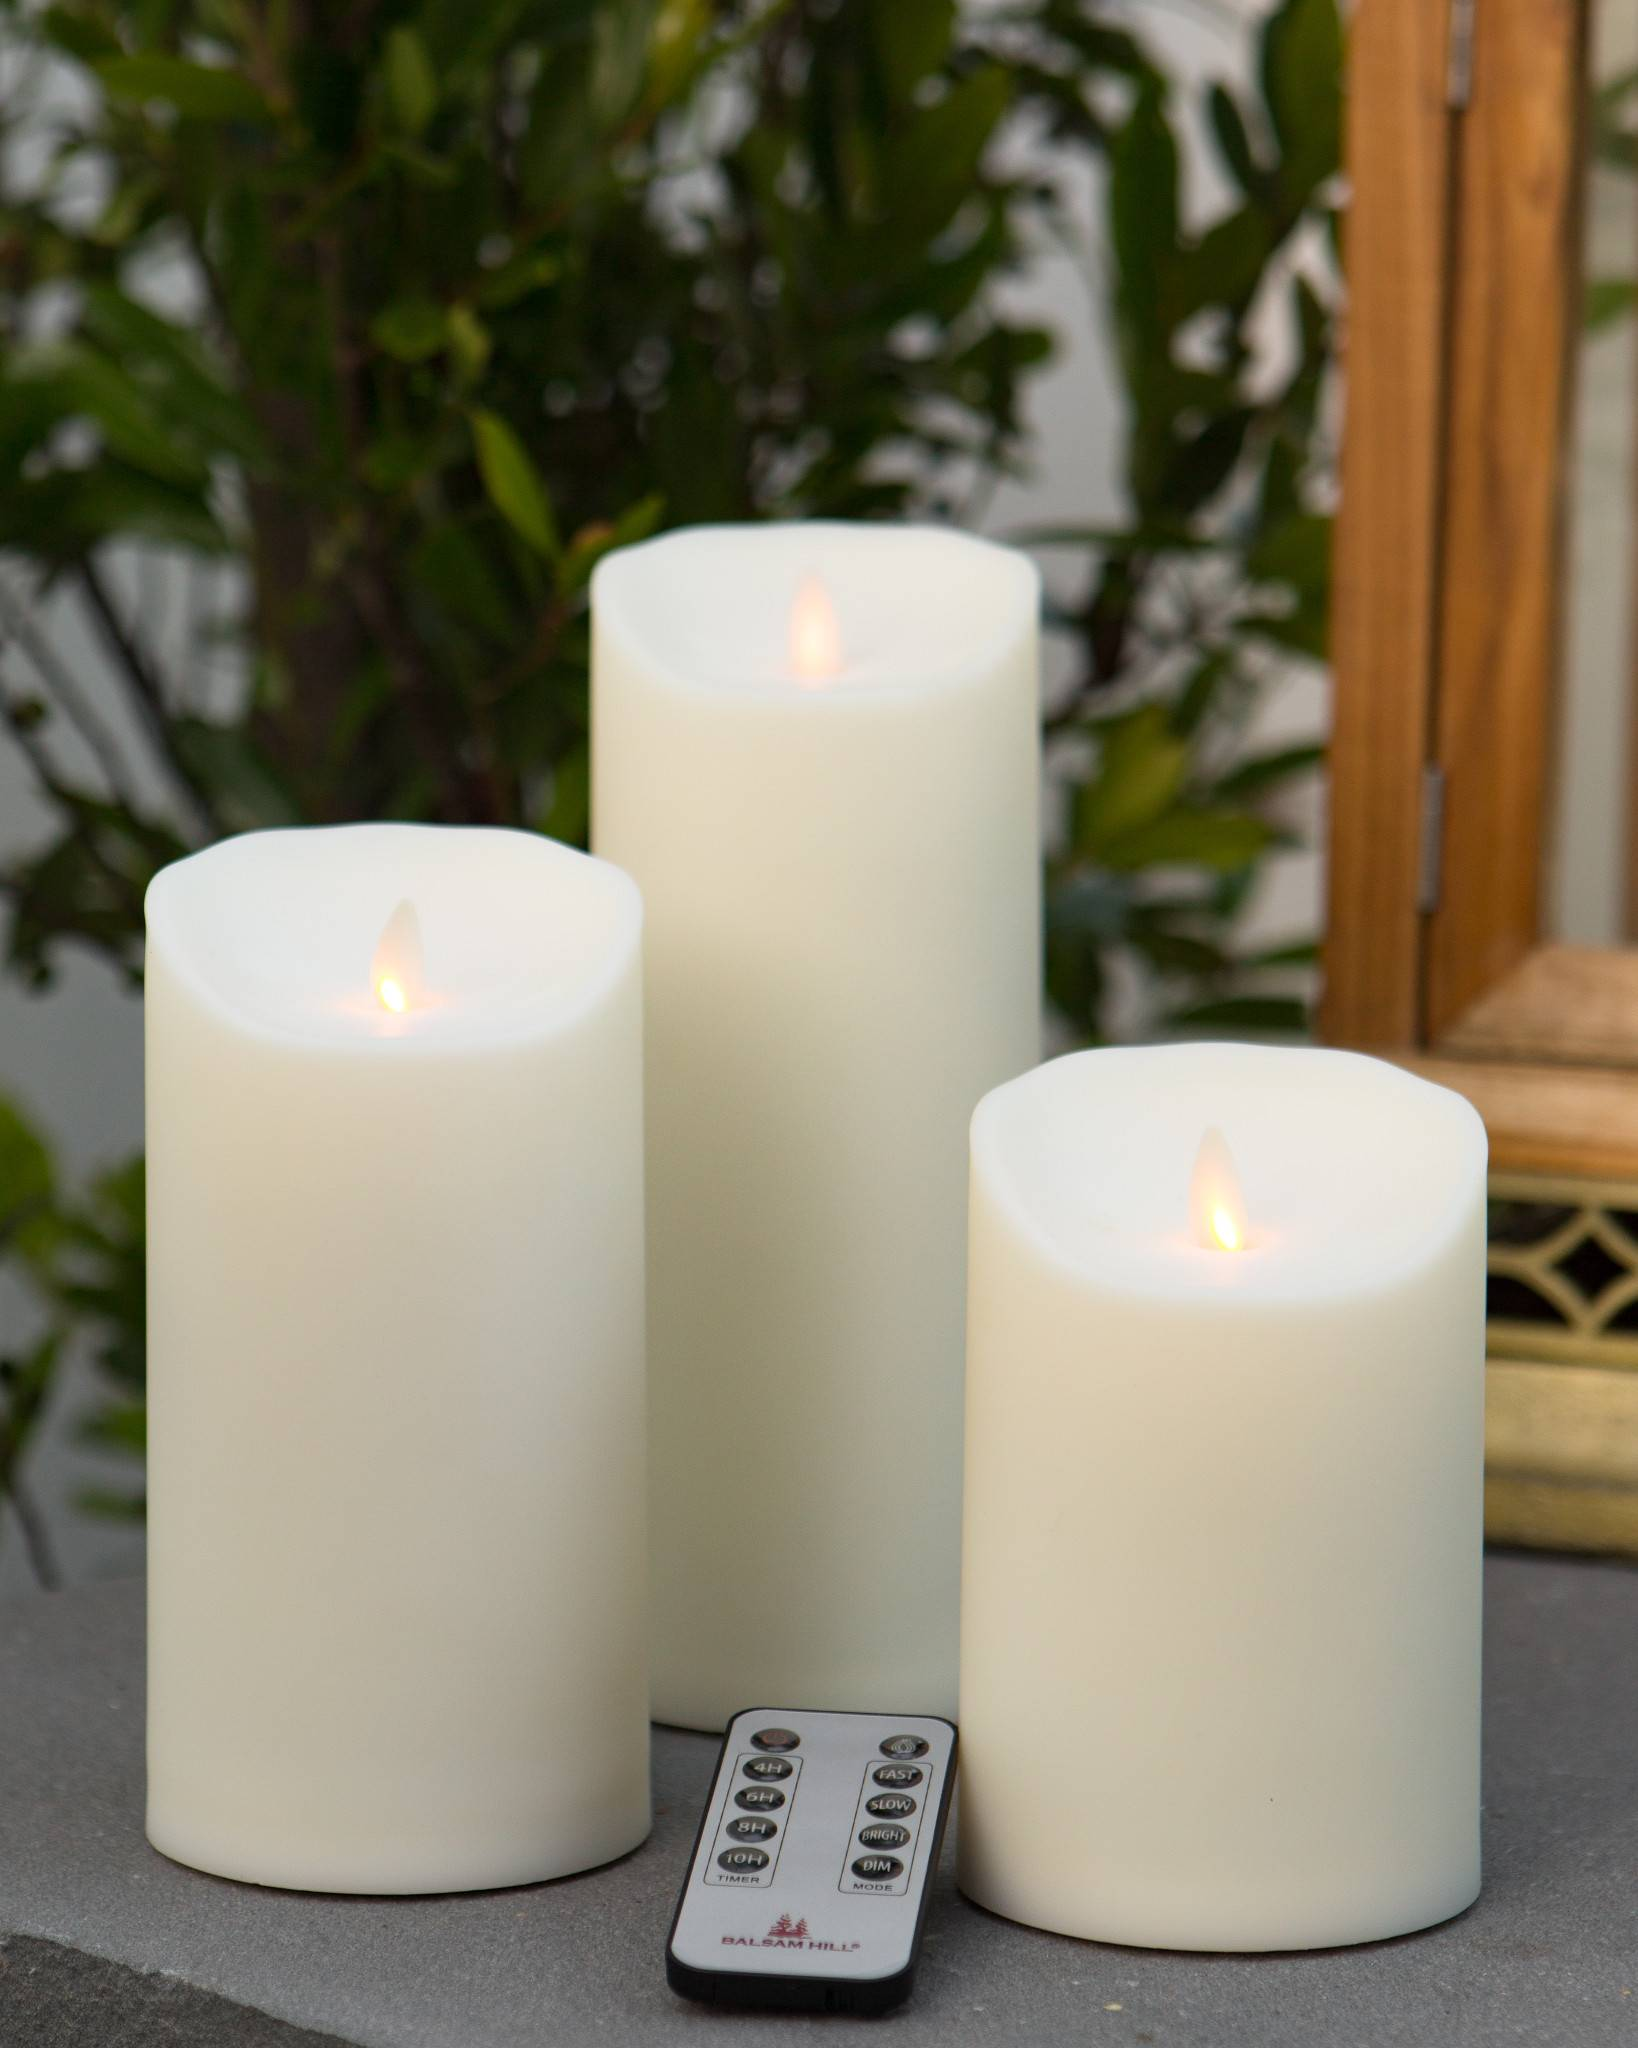 Outdoor Miracle Flame LED Pillar Candle by Balsam Hill